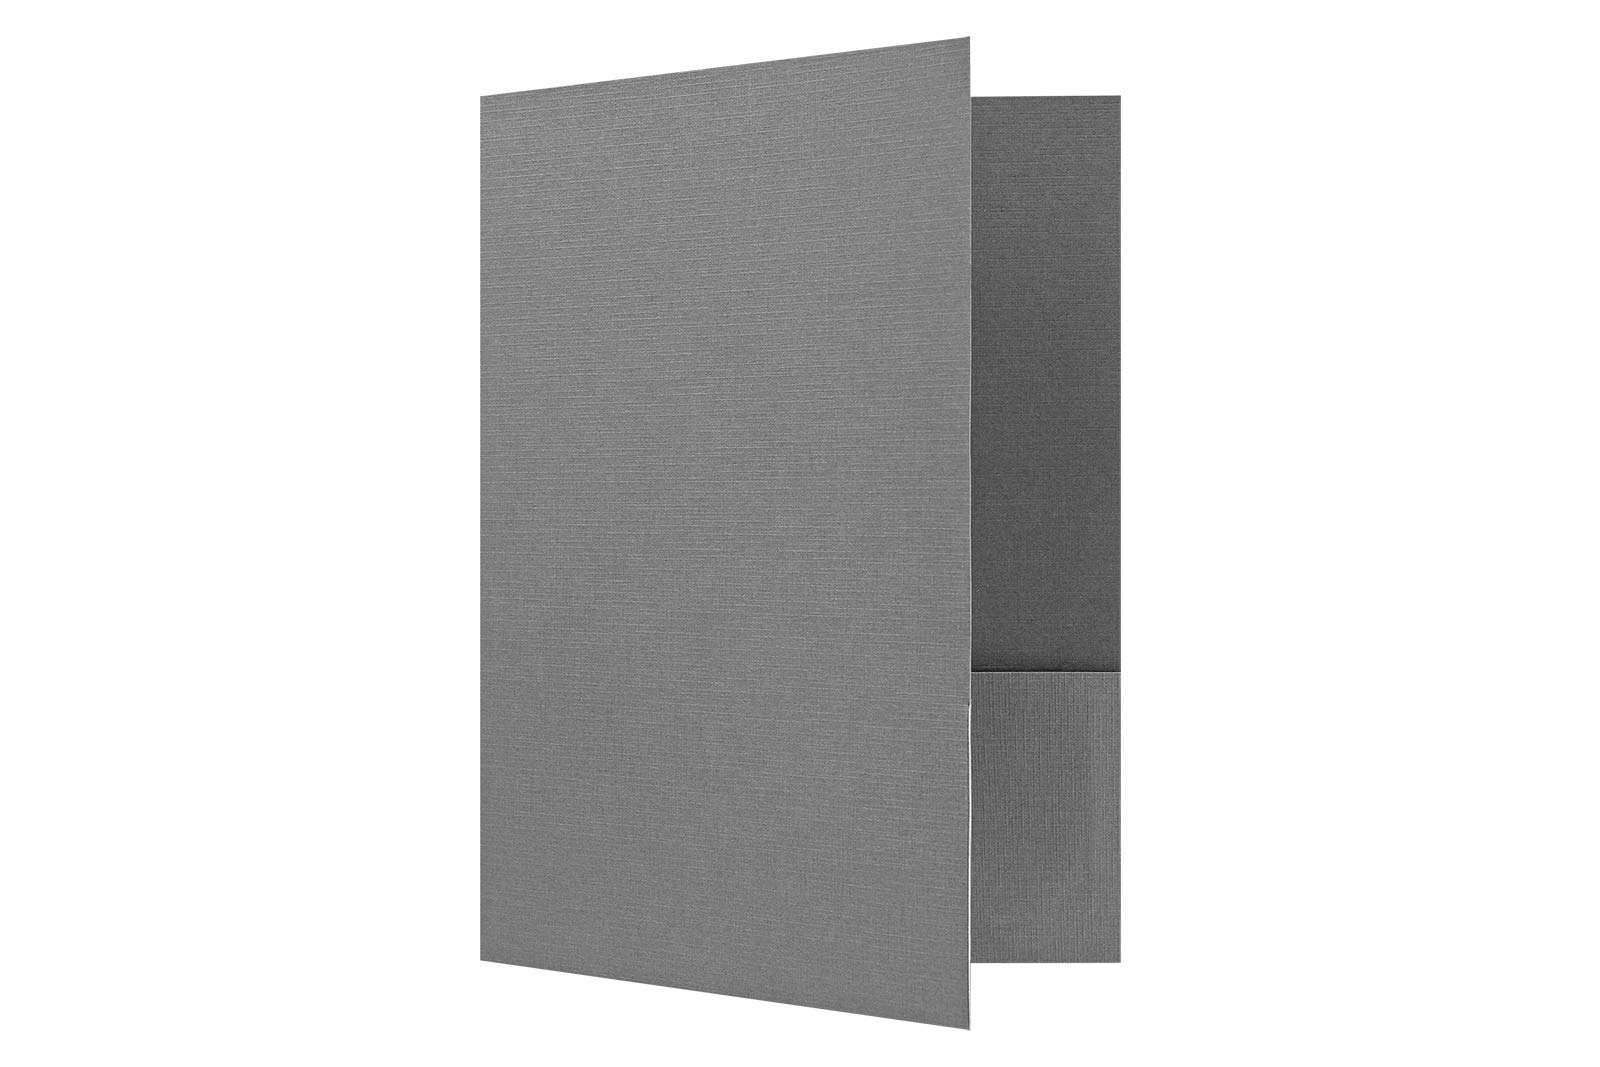 9 x 12 Presentation Folders - Standard Two Pocket - Sterling Gray Linen - Pack of 25 | Perfect for Tax Season, Brochures, Sales Materials and so Much More! | SF-101-CSG100-25 by Envelopes.com